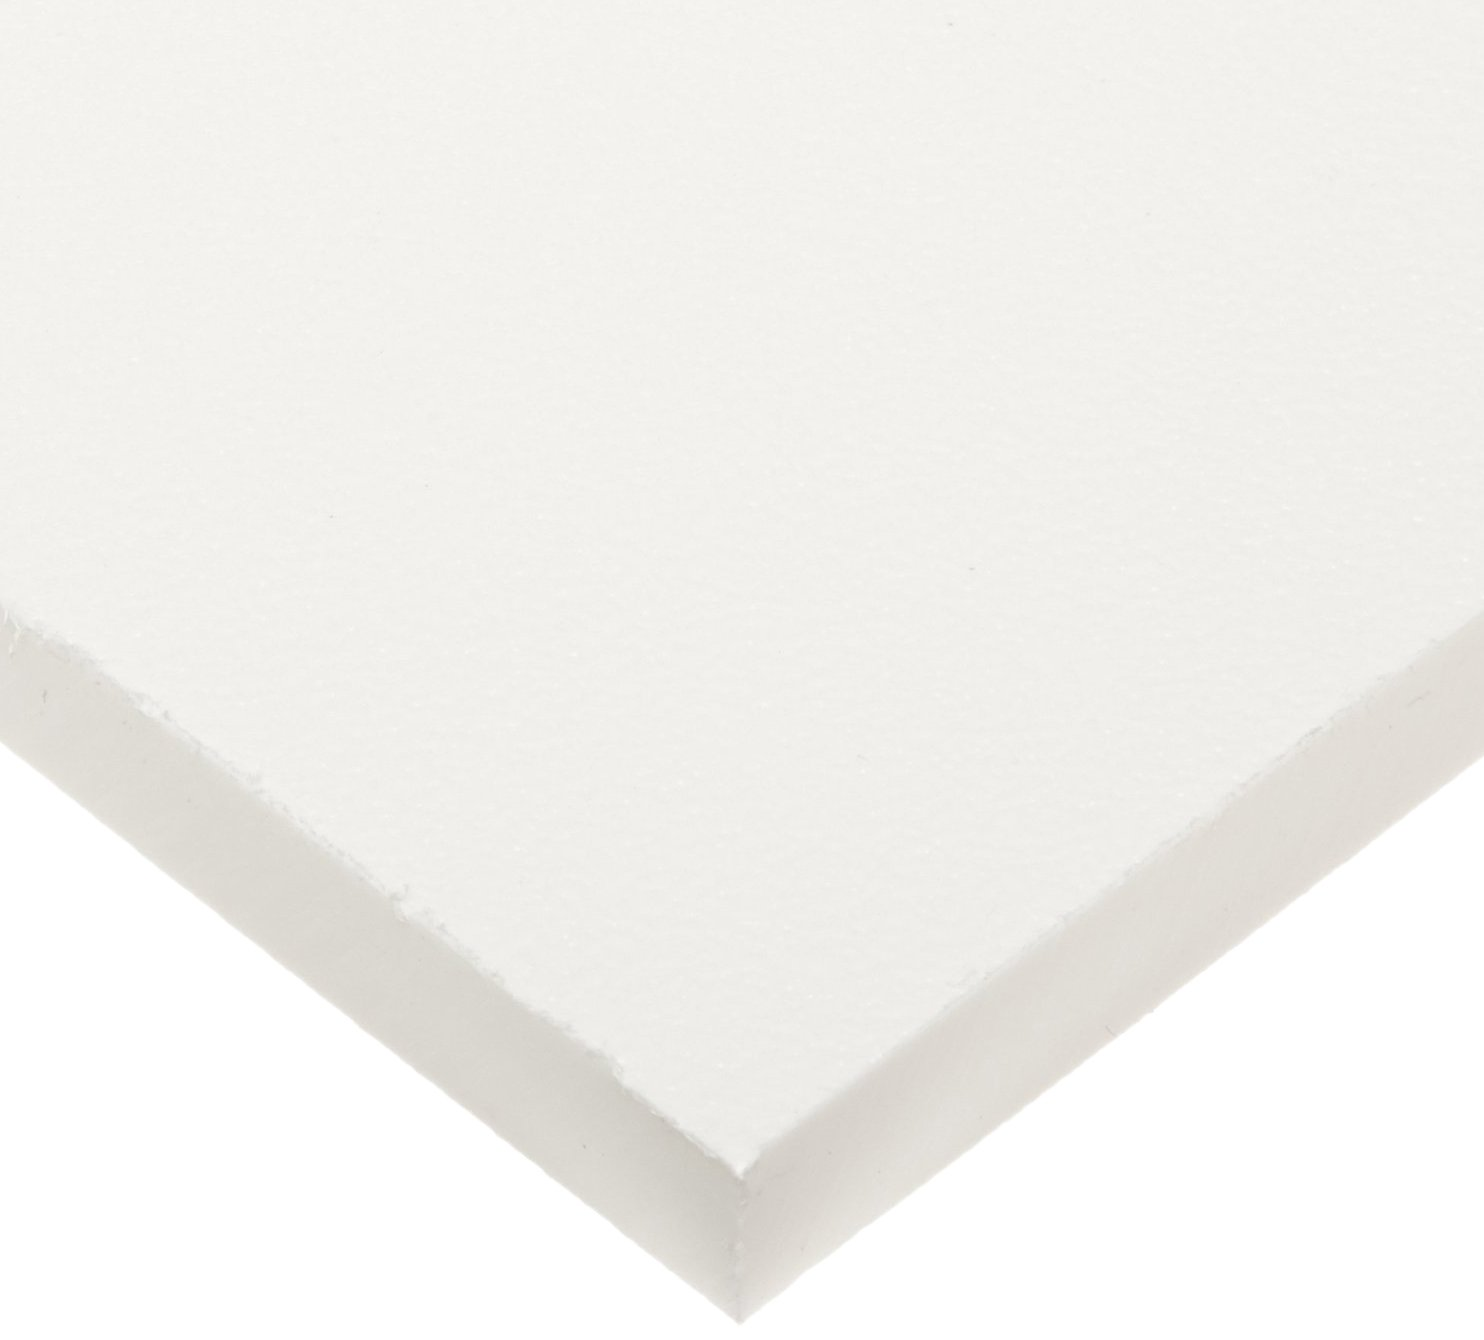 """StarBoard Sheet, White, 1/4"""" Thickness, 27"""" Width, 24"""" Length"""